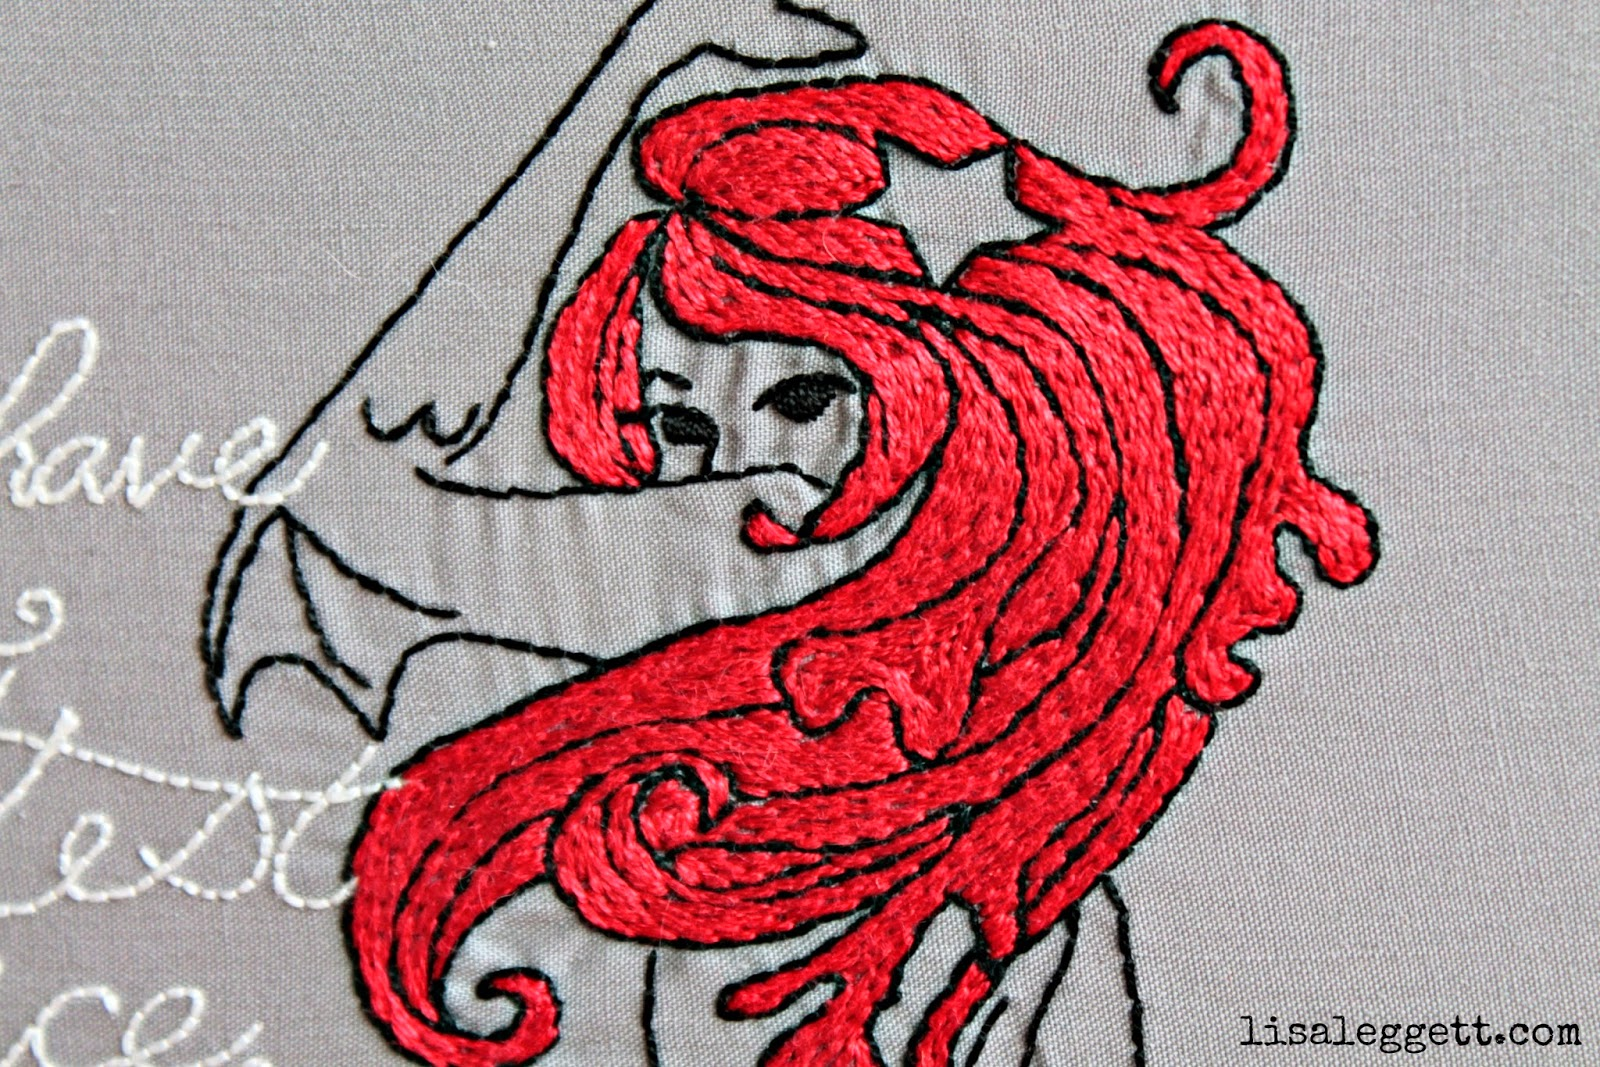 Hair Detail of Dark Fairytales Mermaid stitched by Lisa Leggett